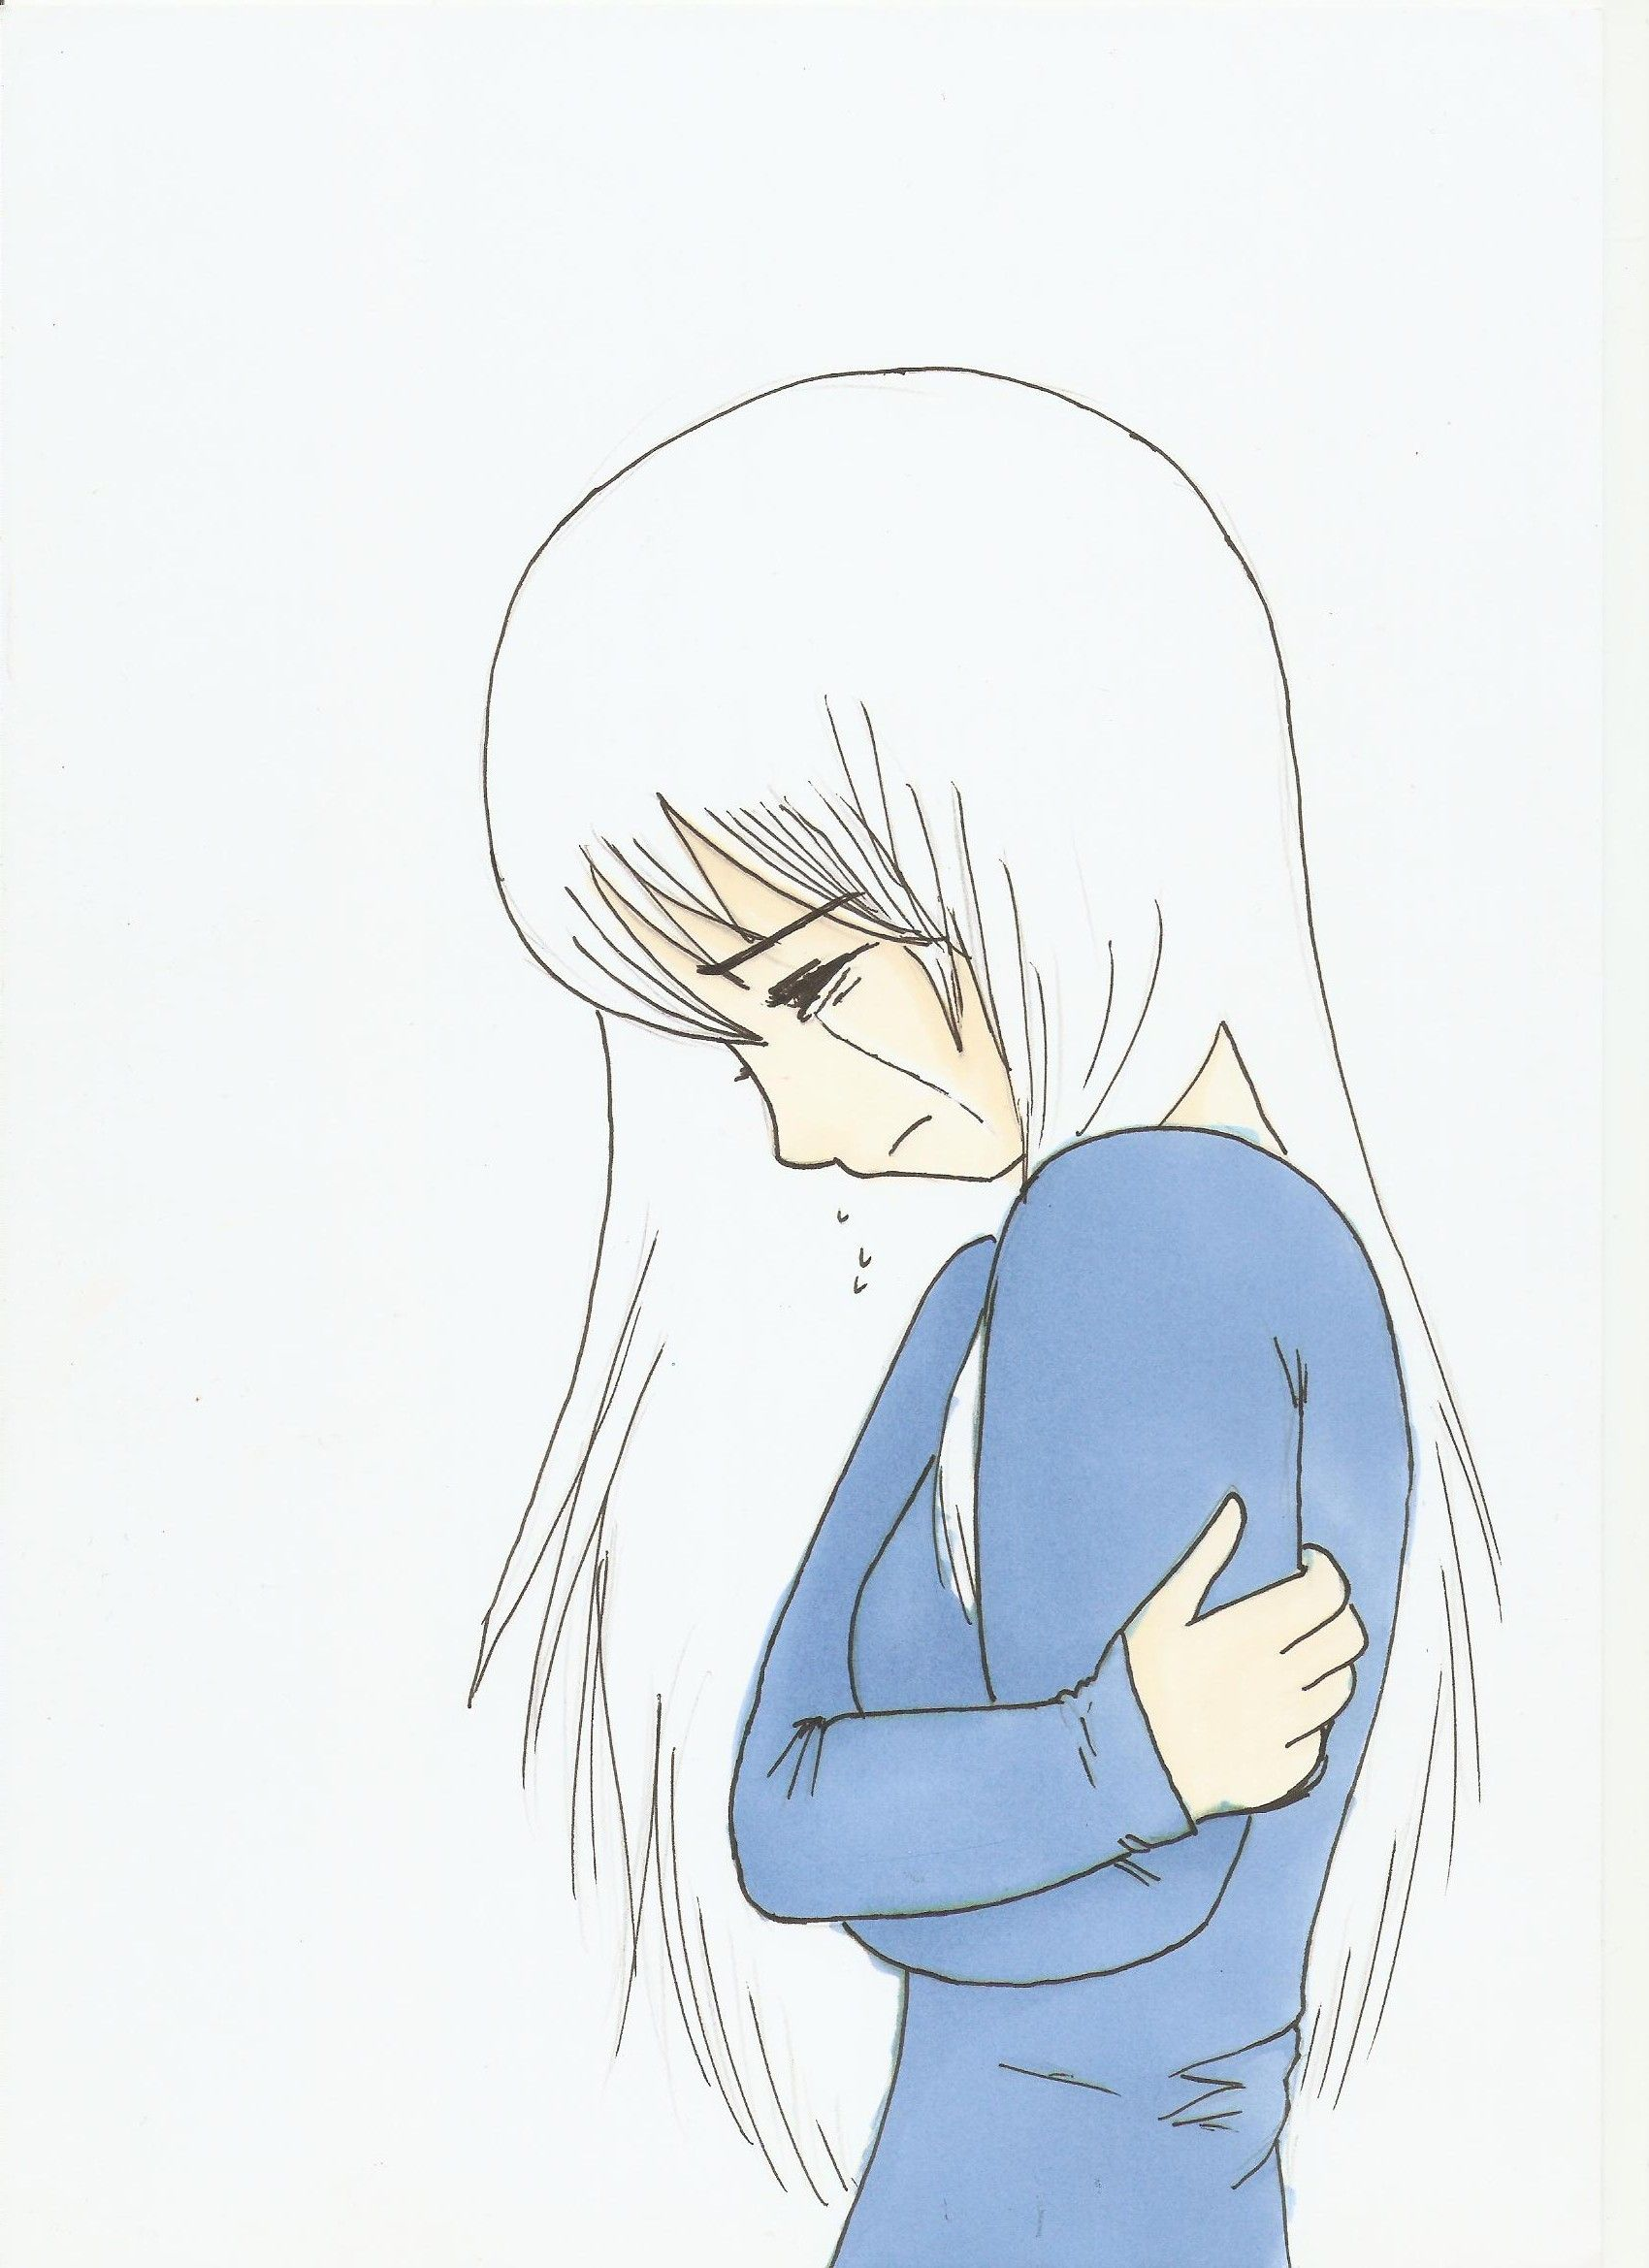 Girl crying drawing easy anime girl crying crossing drawing and